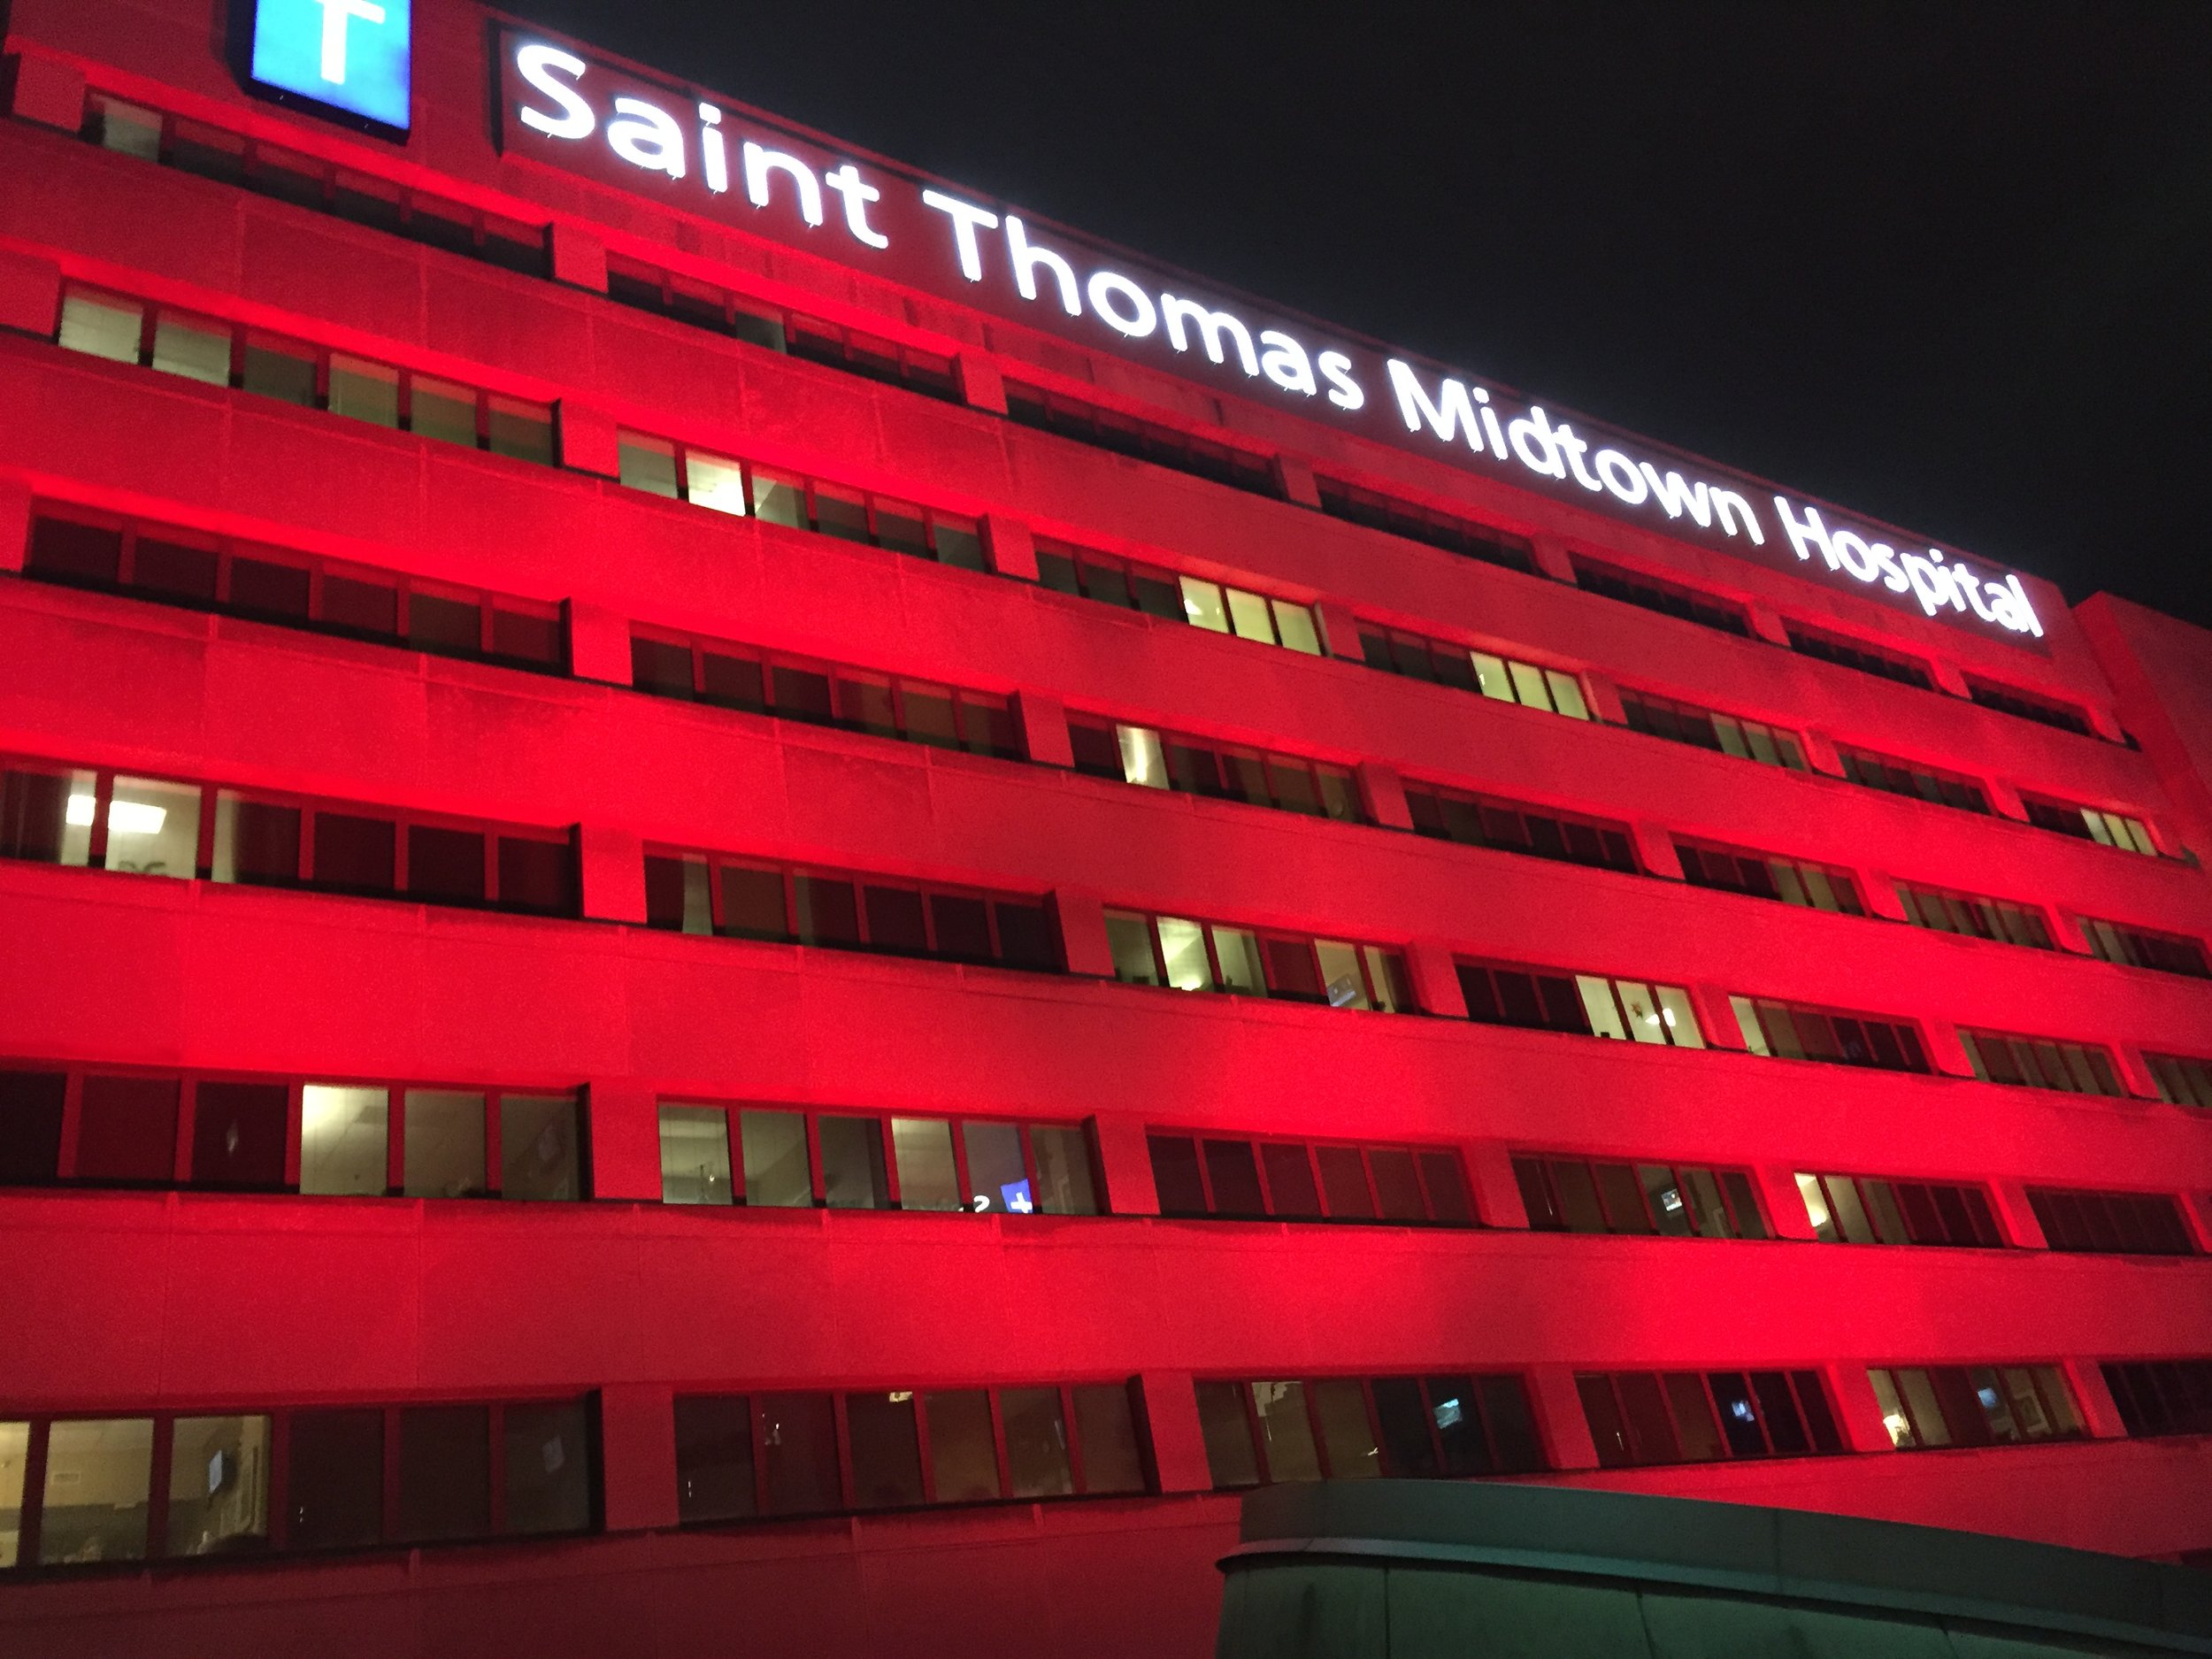 St. Thomas Midtown has transformed their building for several years and we get lots of compliments on this one.